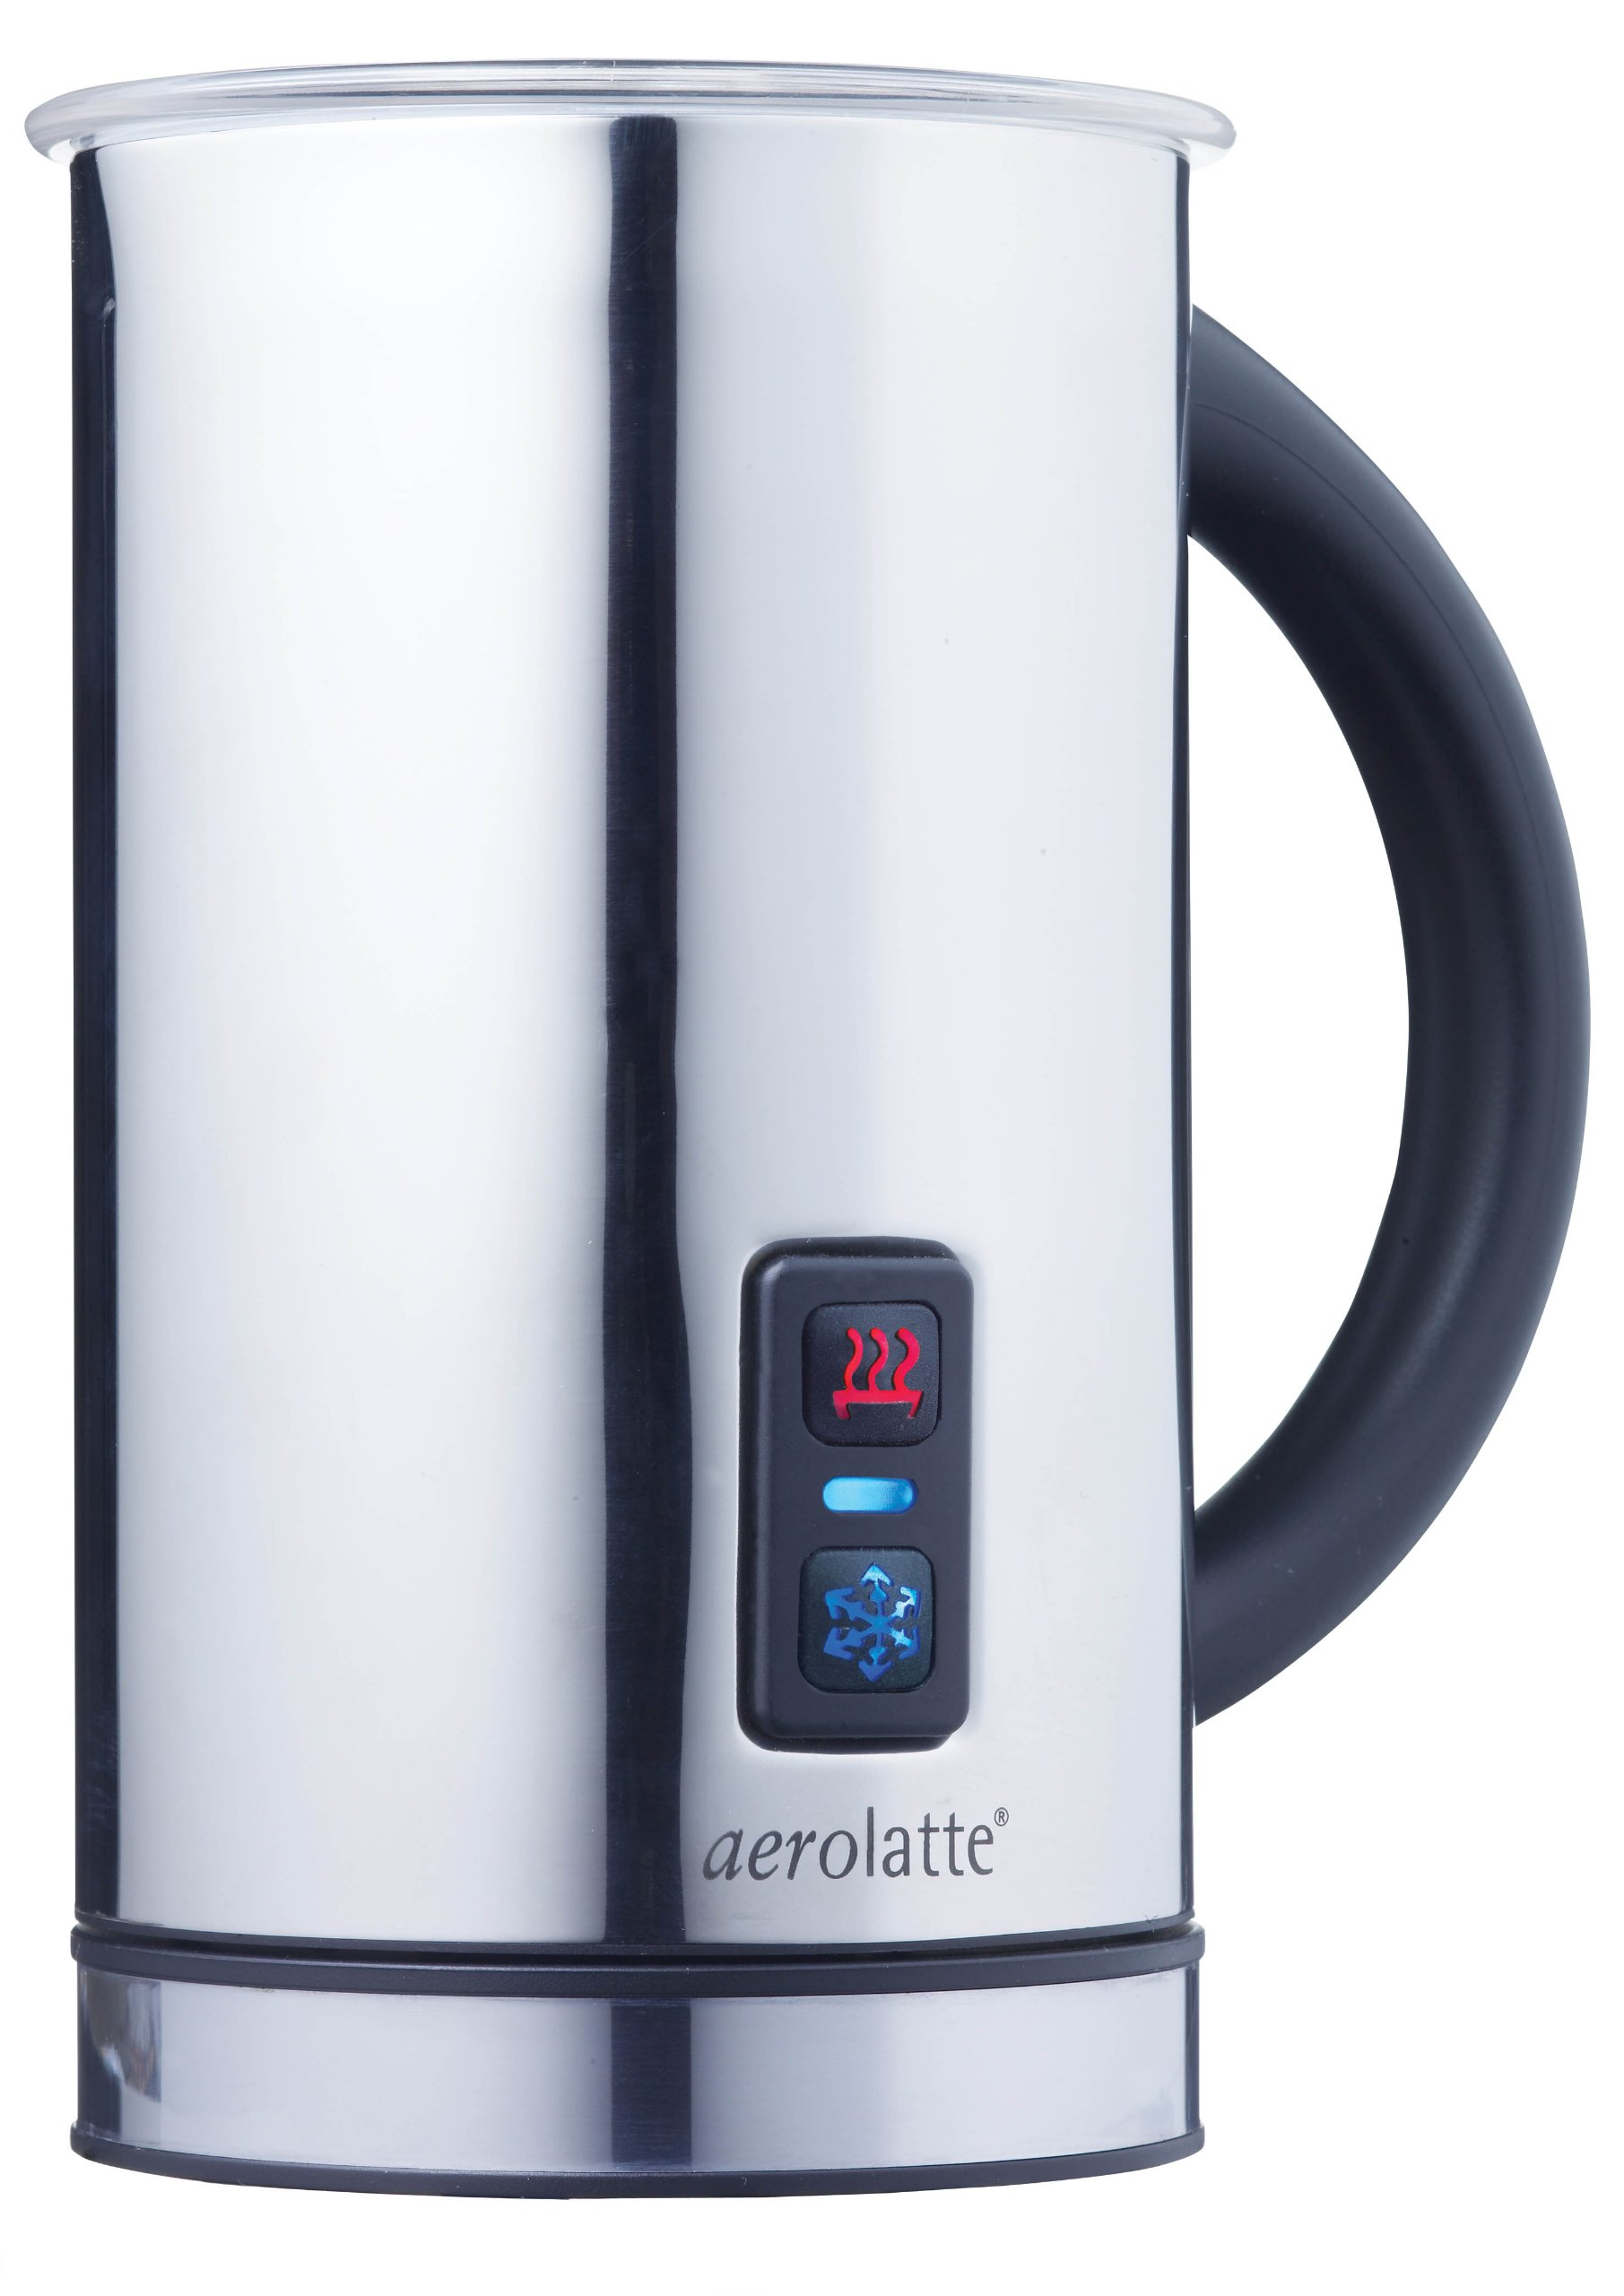 aerolatte Compact Automatic Hot or Cold Milk Frother and Cappuccino Foam Maker, Stainless Steel, 11.5-Ounce by aerolatte (Image #1)